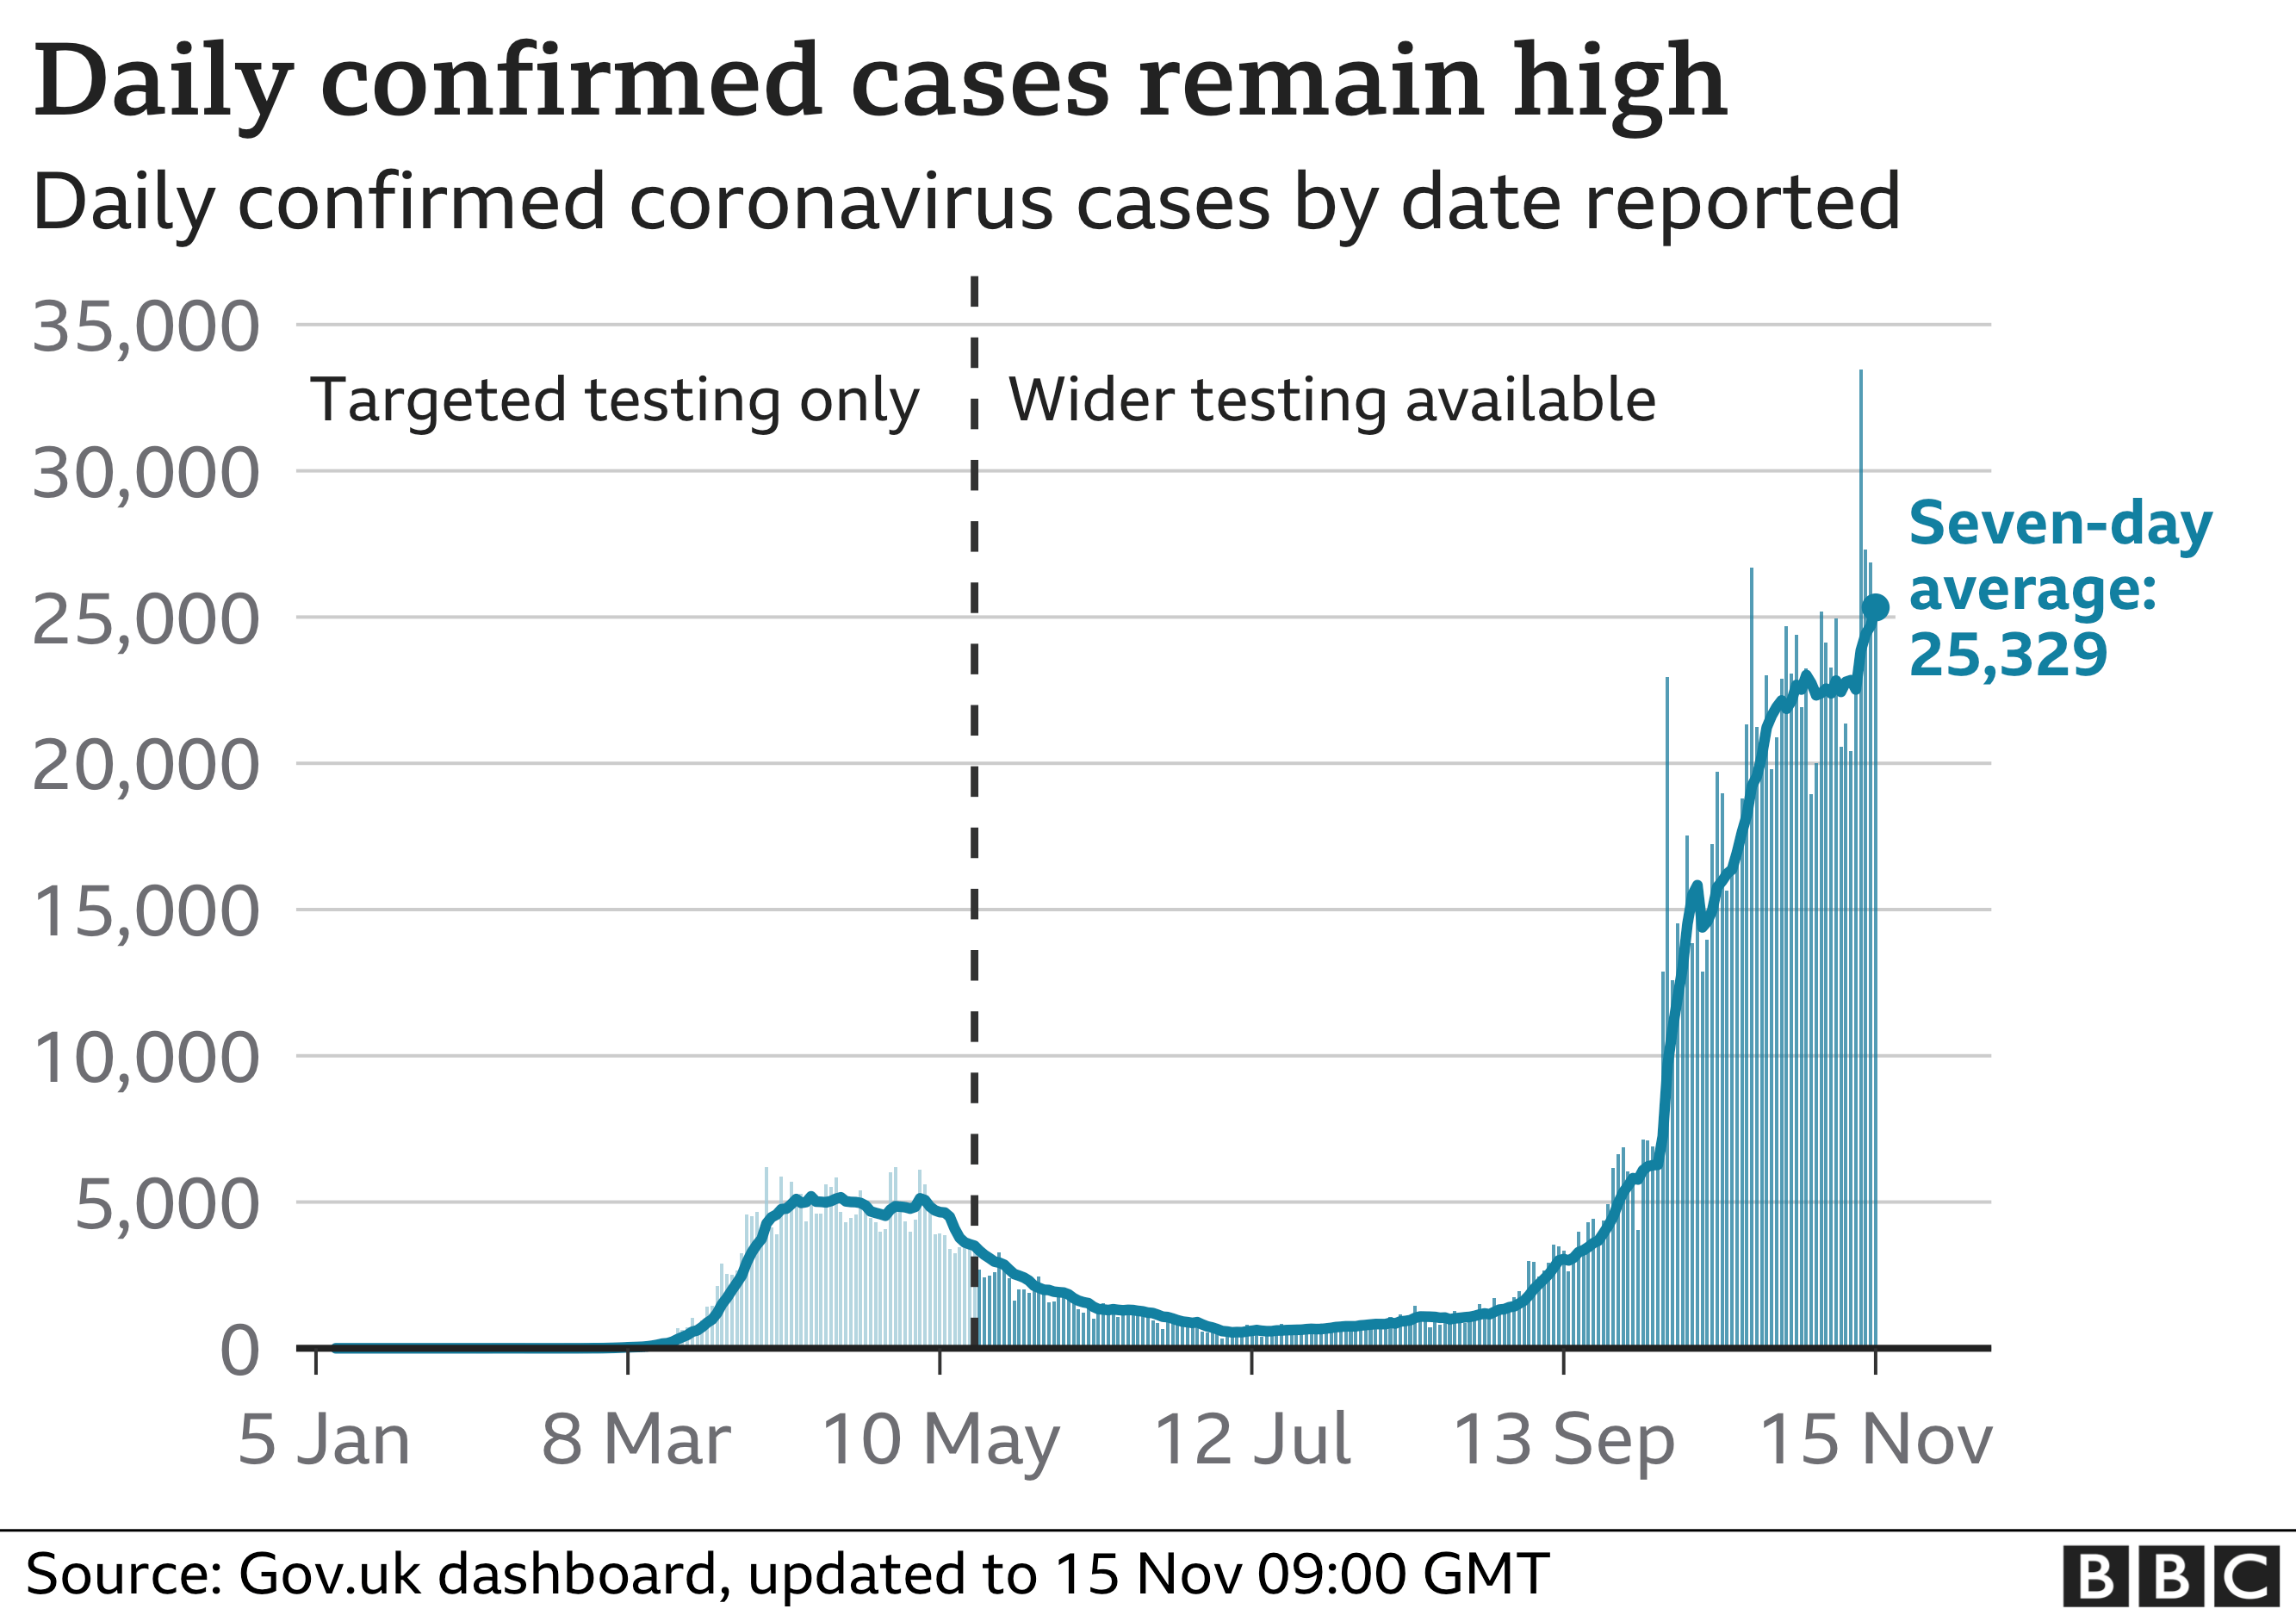 Daily confirmed cases